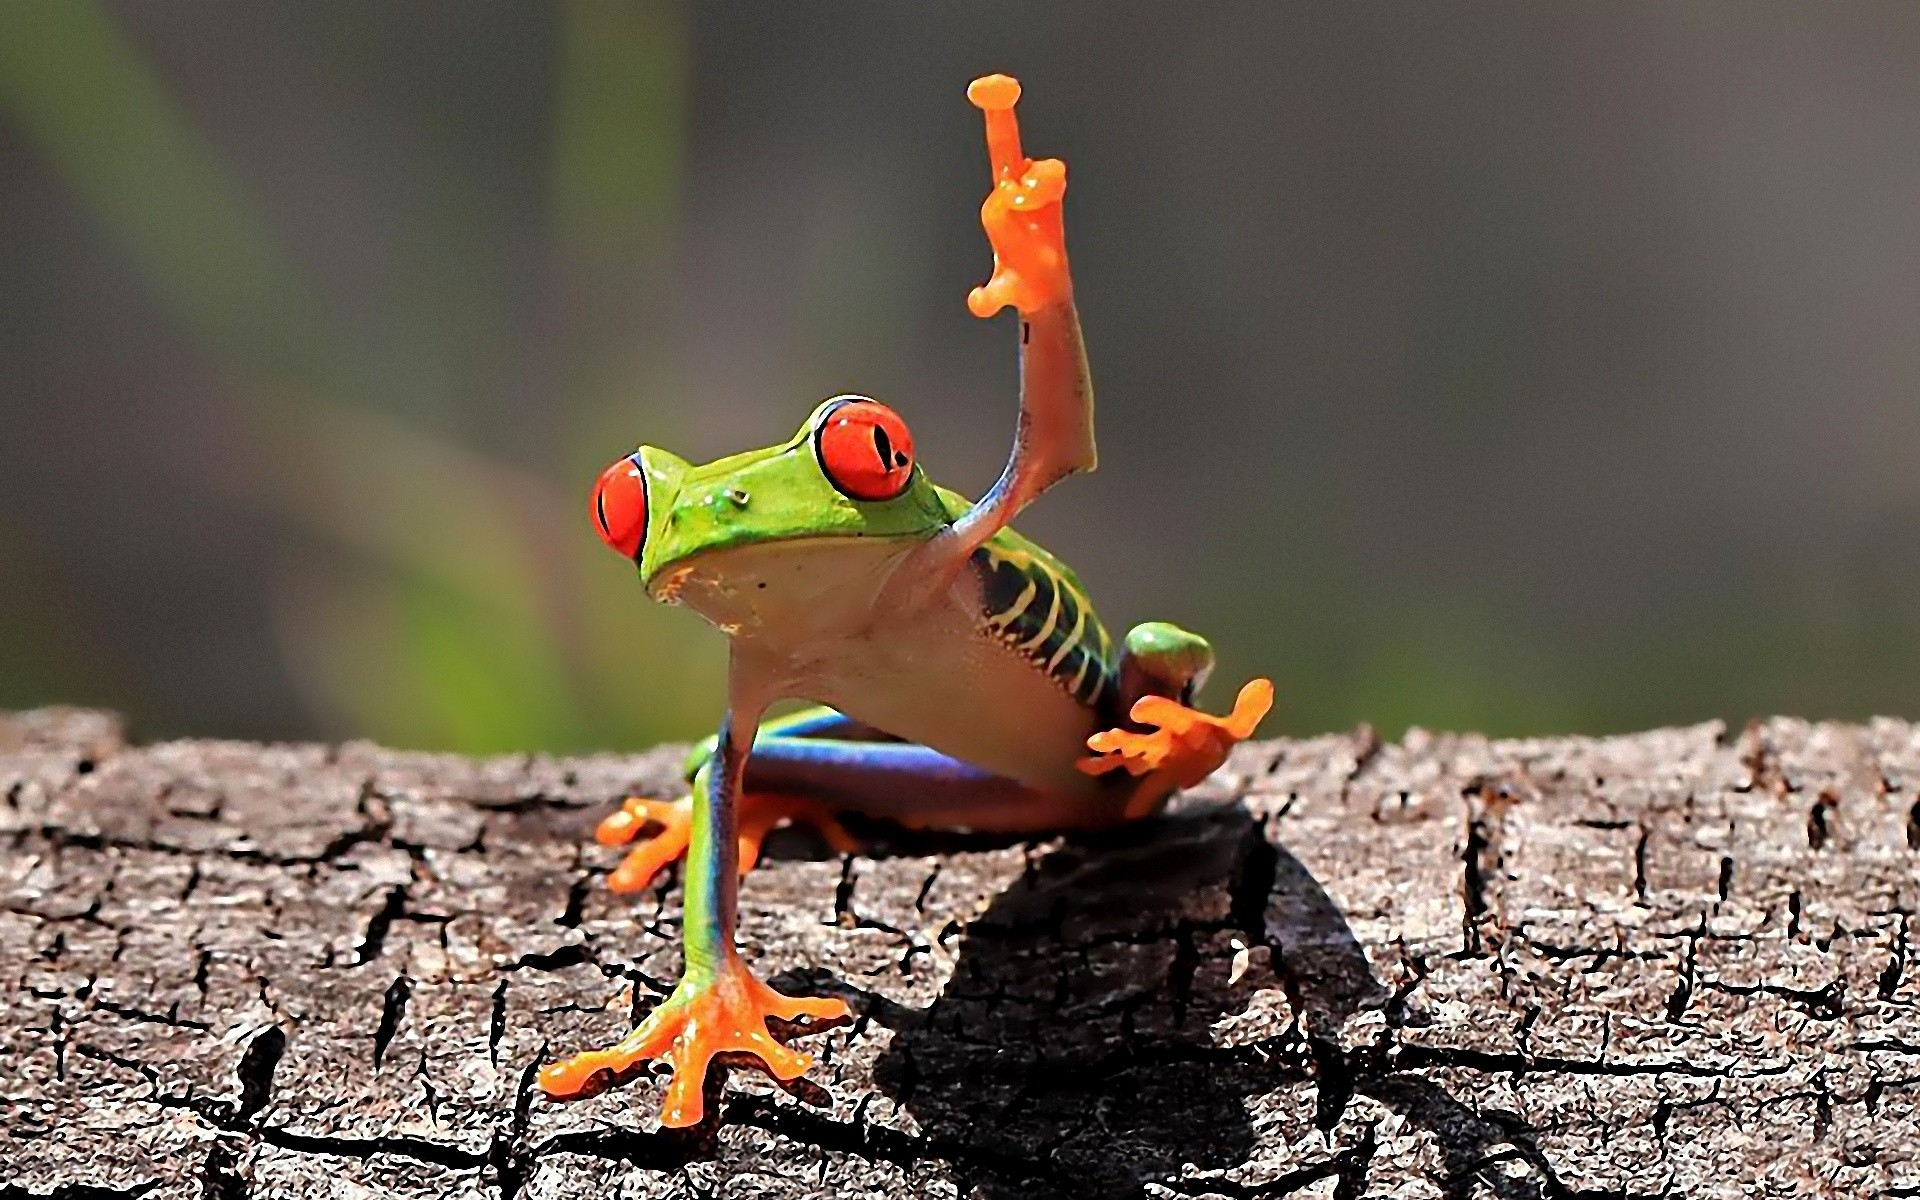 Animal - Frog  - Humor - Funny - Cute Wallpaper